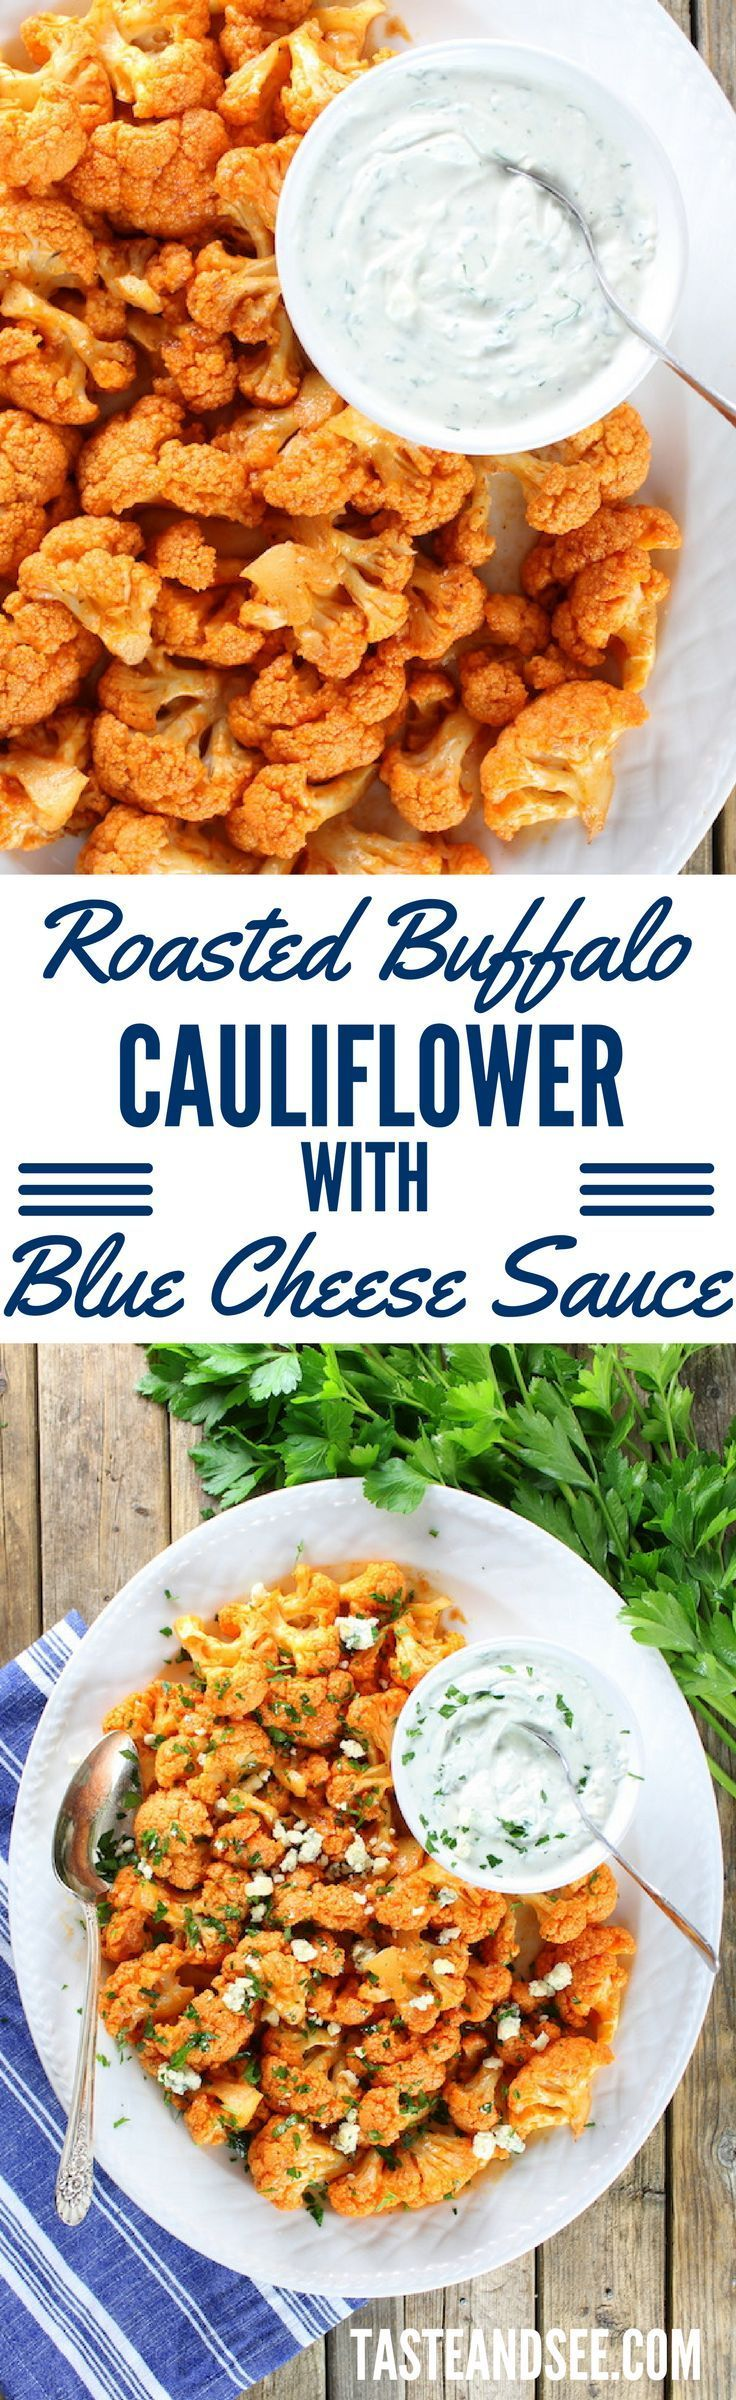 Roasted Buffalo Cauliflower with Blue Cheese Sauce! Low-calorie, low ...